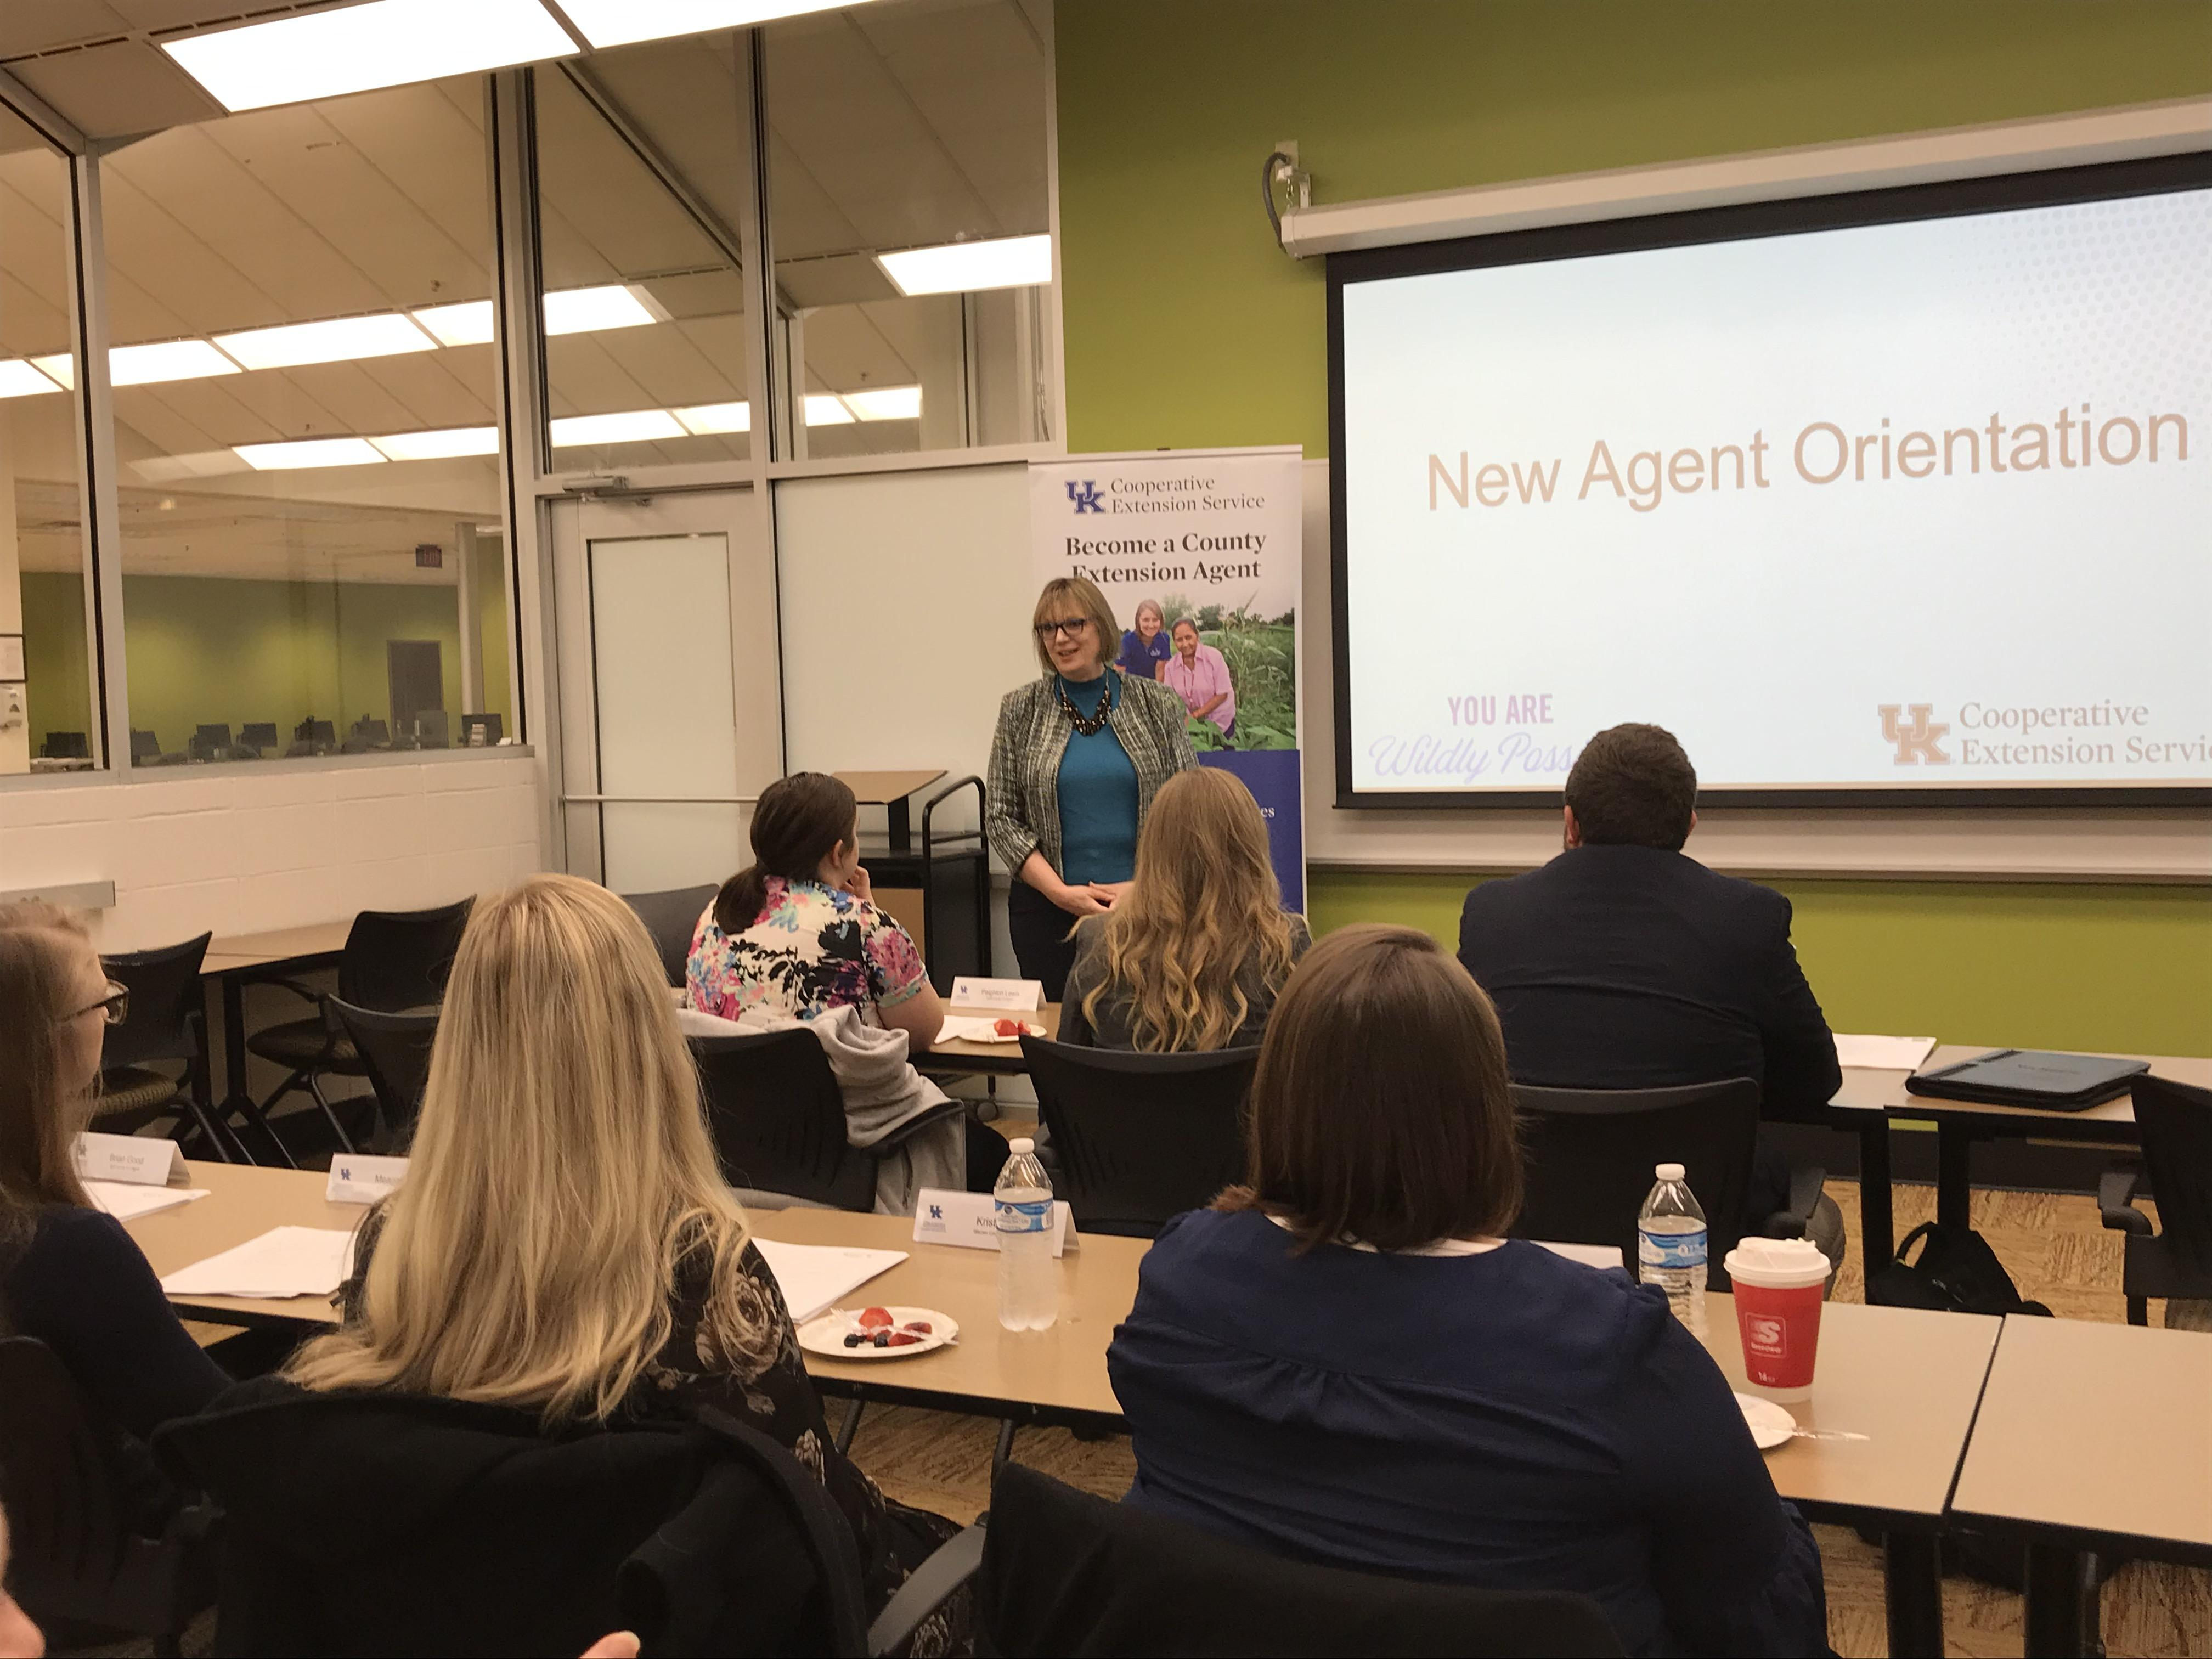 Dr. Laura Stephenson addressing New Agent Orientation.